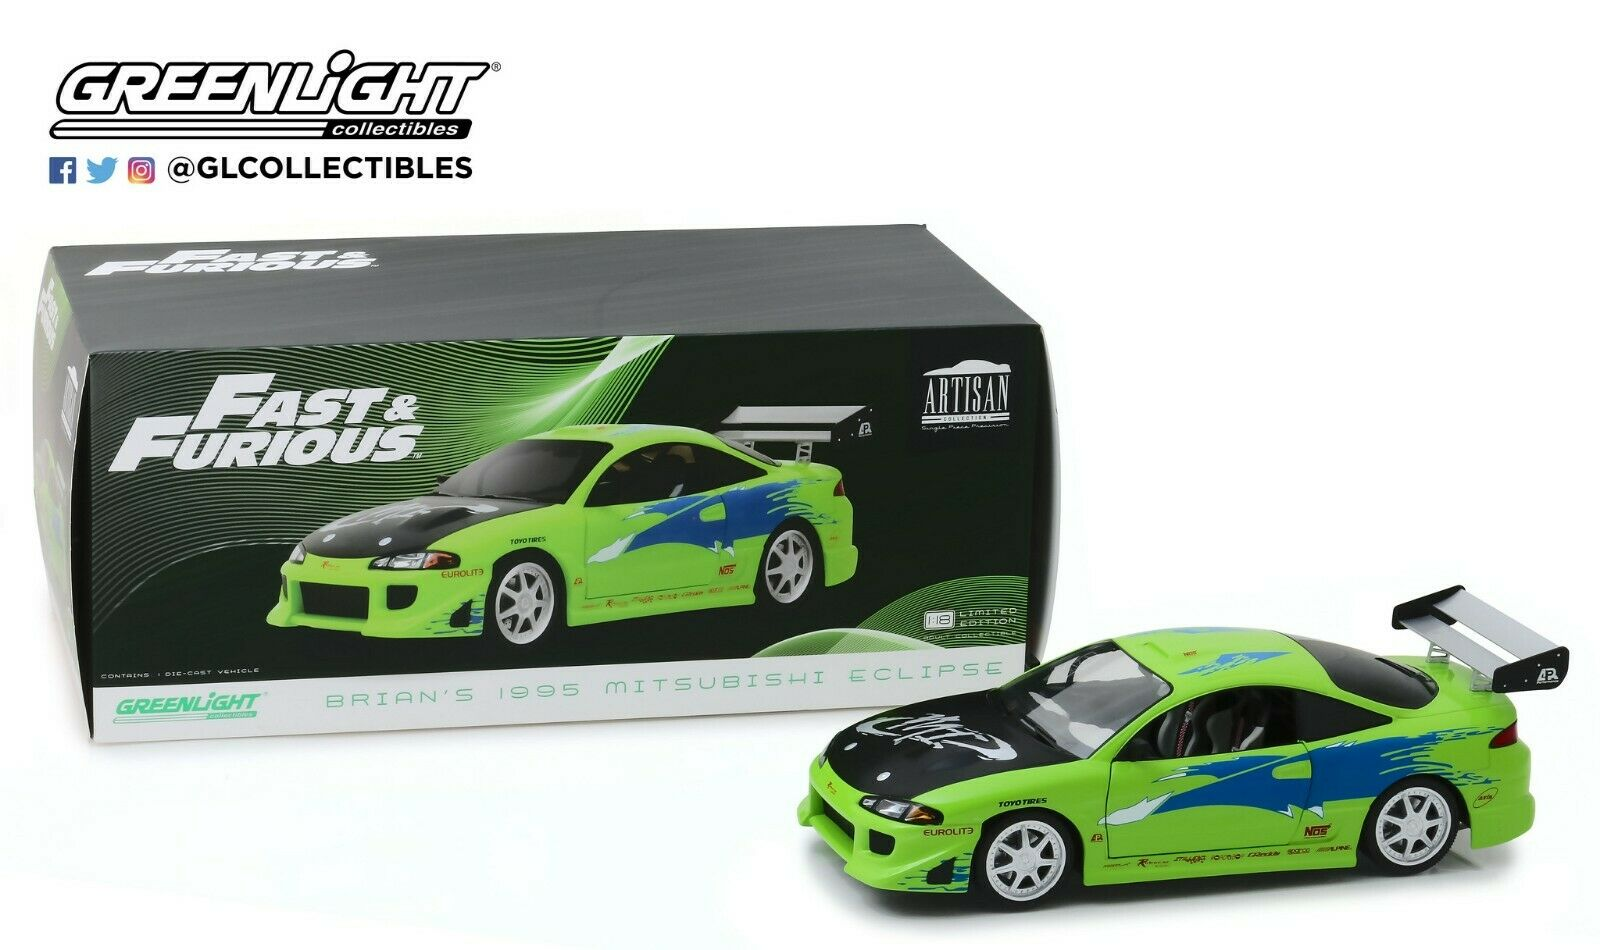 GreenLight 1 18 The Fast and the Furious (2001) - 1995 Mitsubishi Eclipse 19039